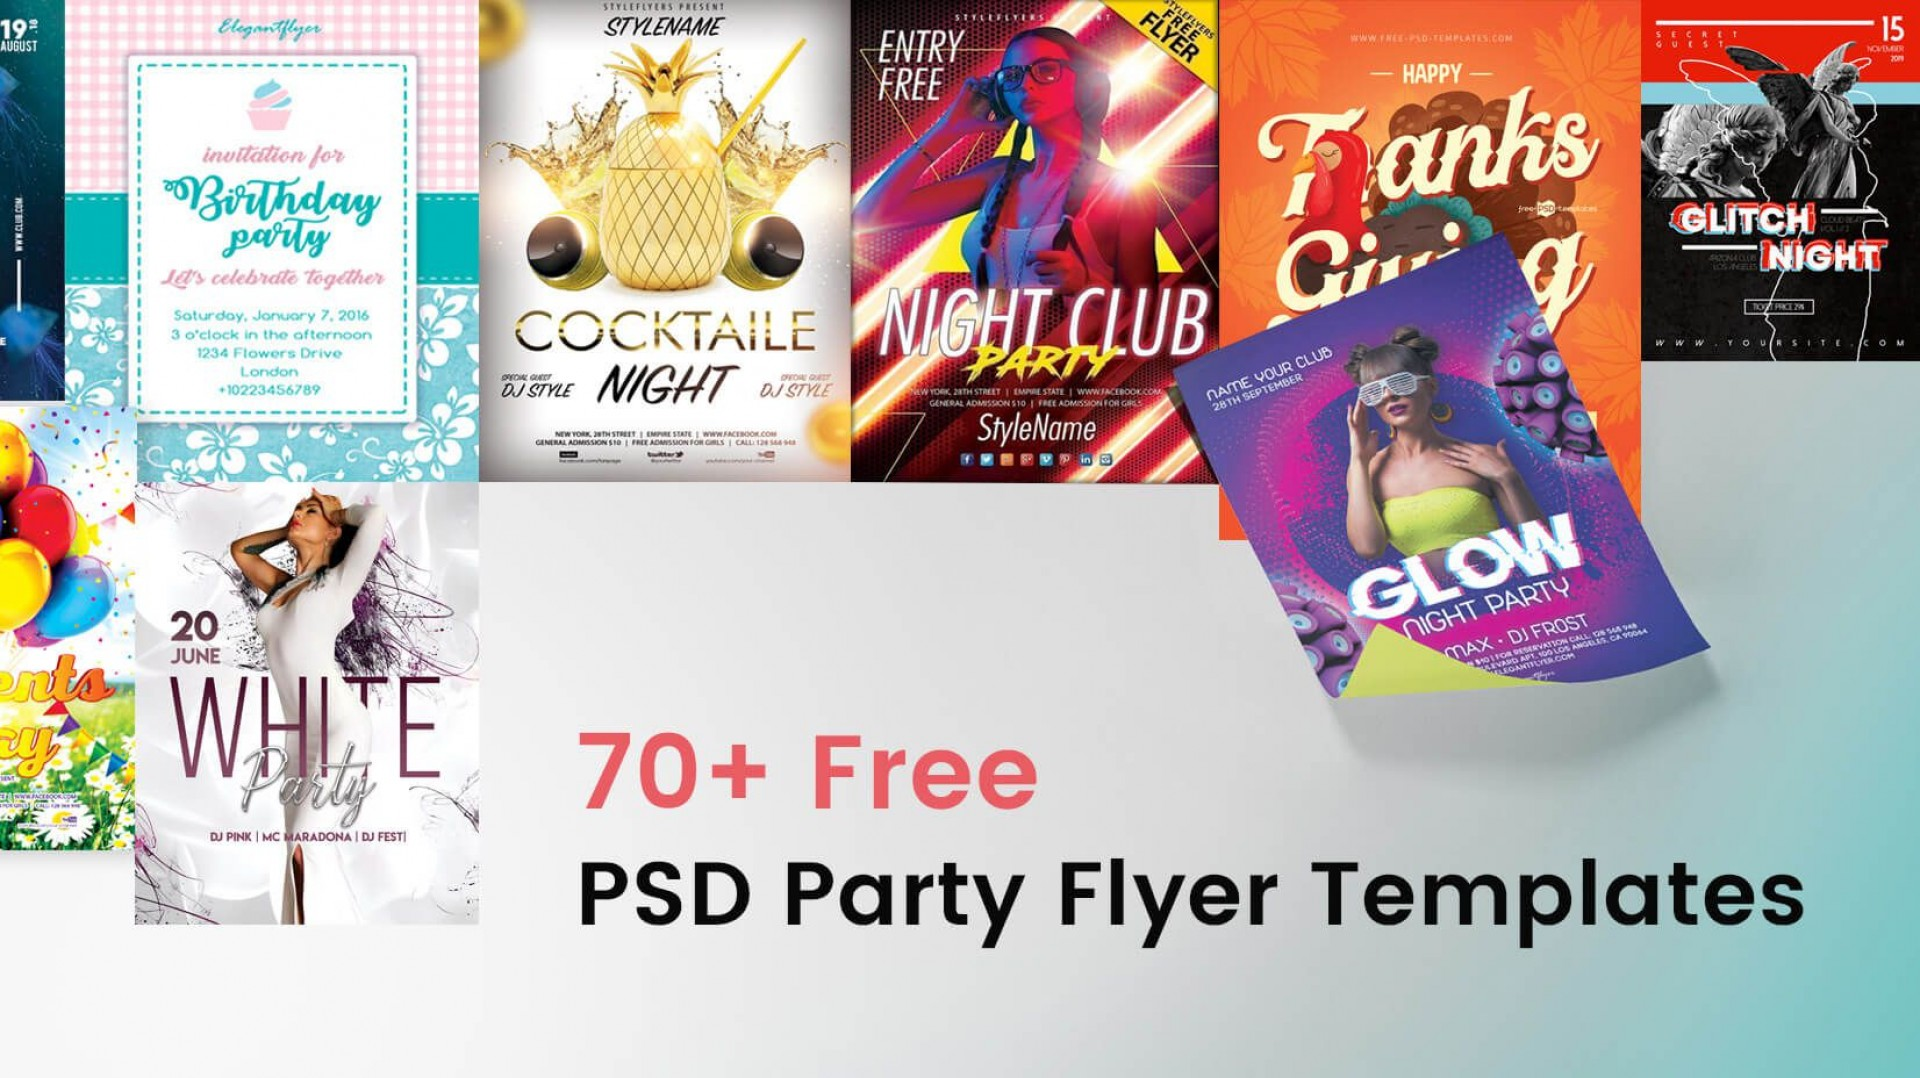 008 Awful Free Party Flyer Psd Template Download Concept  - Neon Glow1920